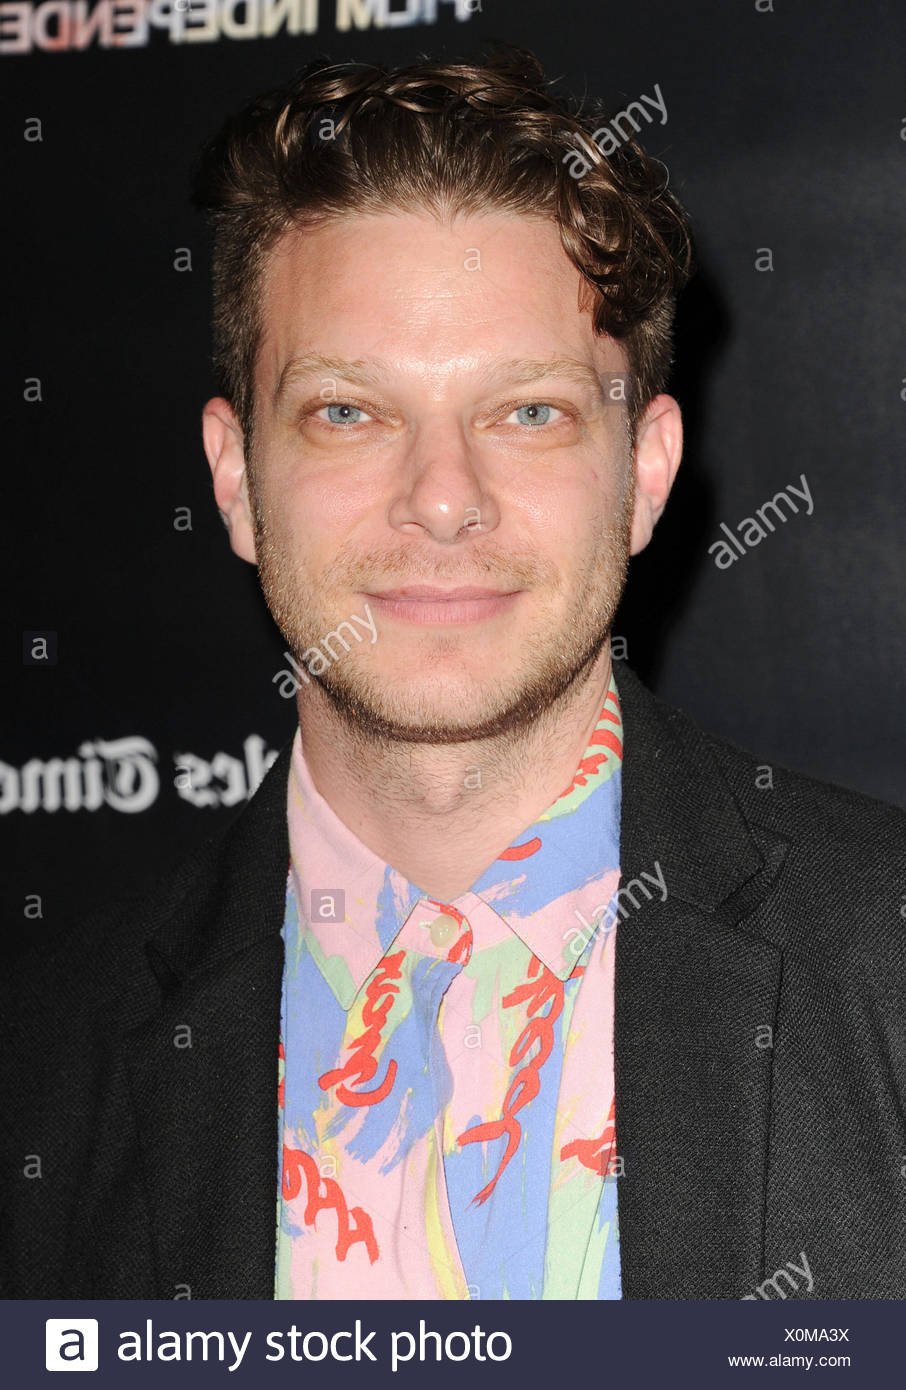 Director Todd Strauss-Schulson attends 'The Final Girls' screening during the 2015 Los Angeles Film Festival at Regal Cinemas L.A. Live on June 16, 2015 in Los Angeles, California., Additional-Rights-Clearances-NA - Stock Image